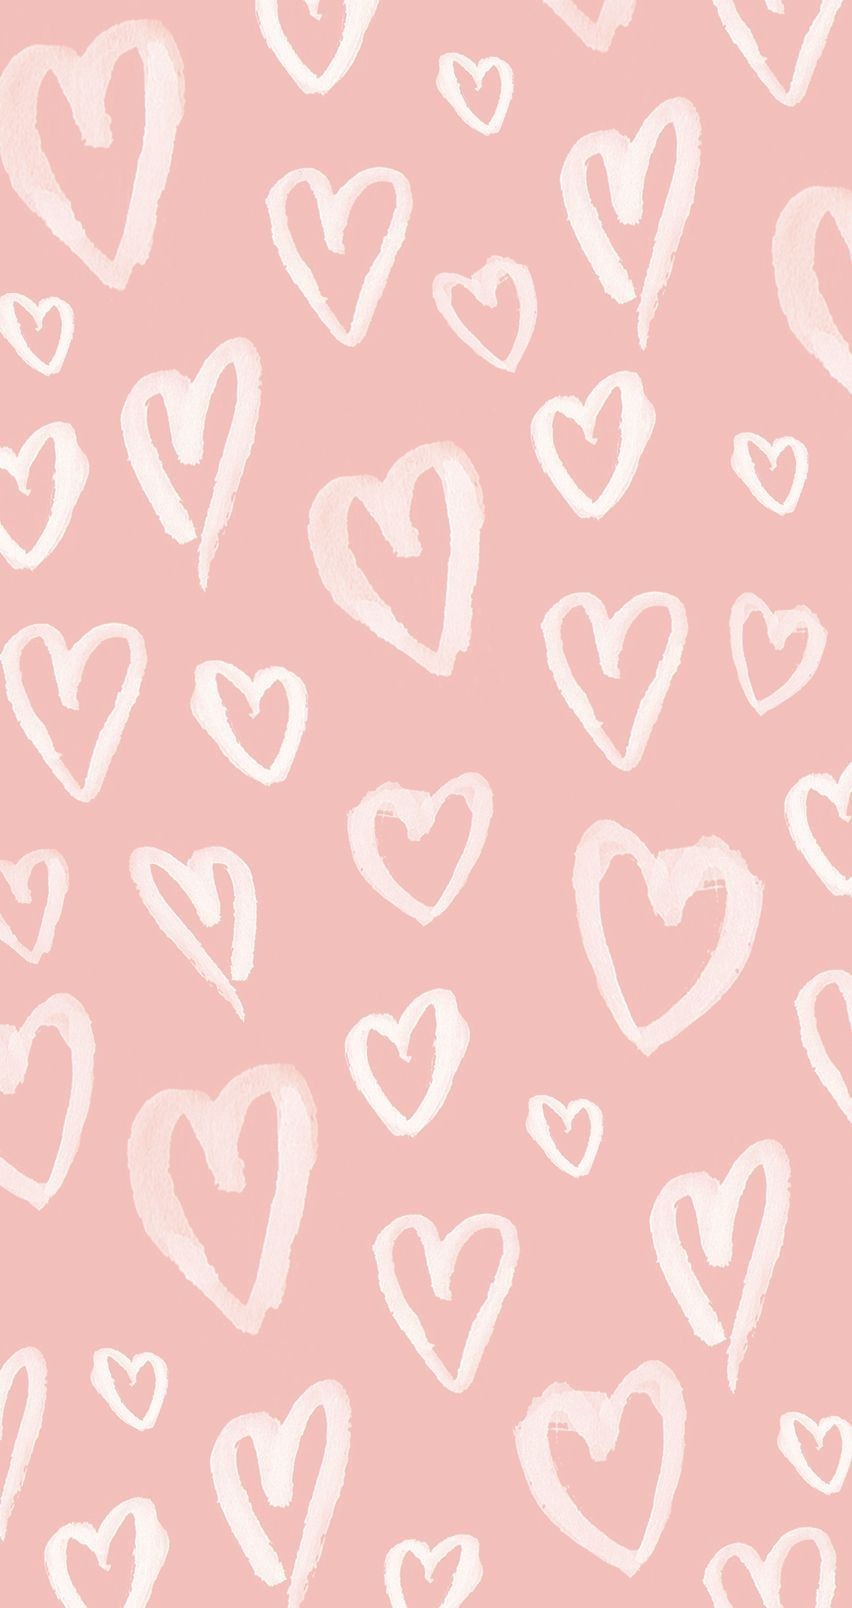 Heart Aesthetic Wallpapers Top Free Heart Aesthetic Backgrounds